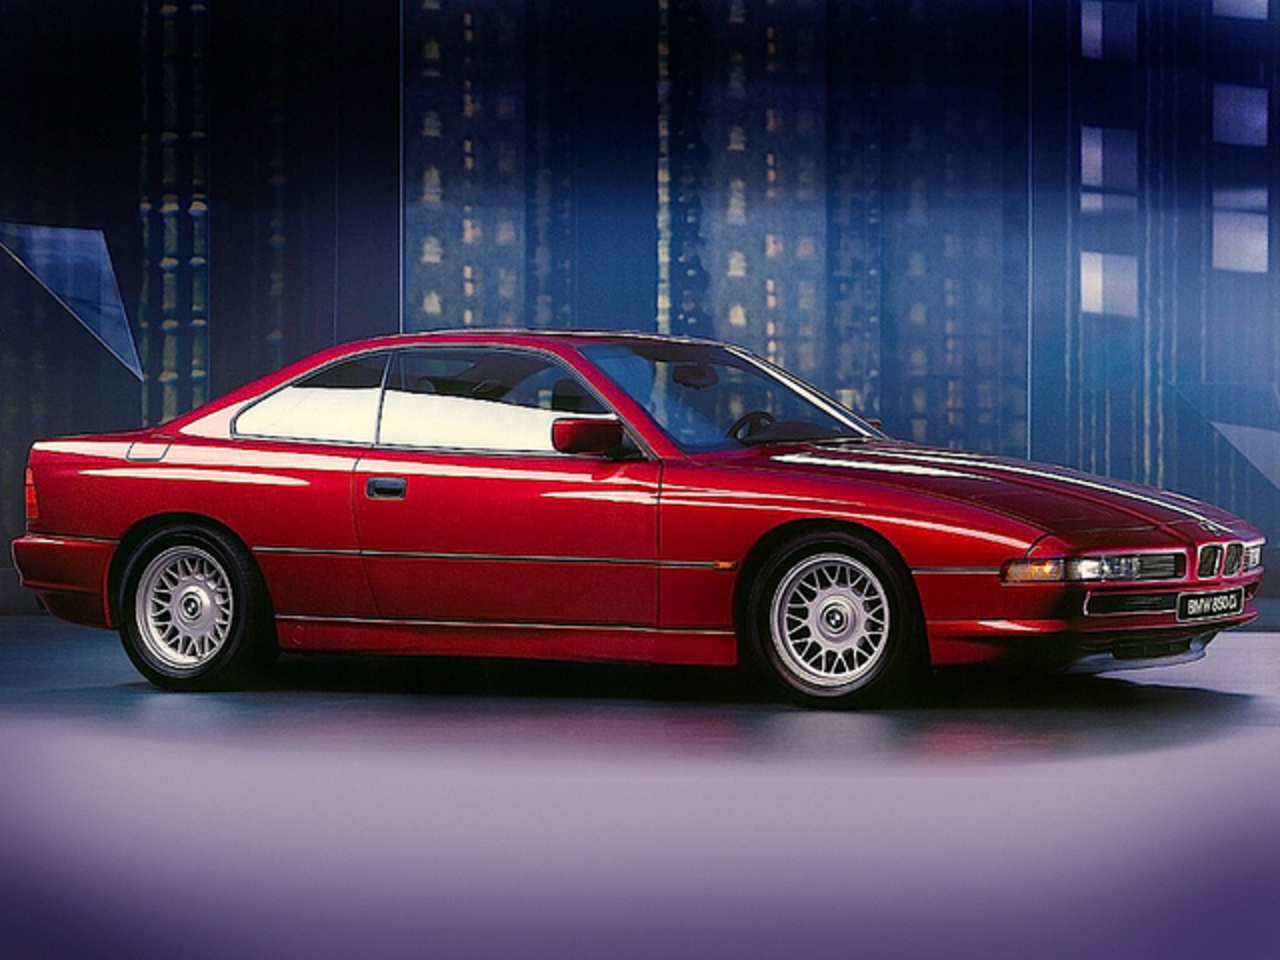 BMW 850 Ci (E31) | Flickr - Photo Sharing!